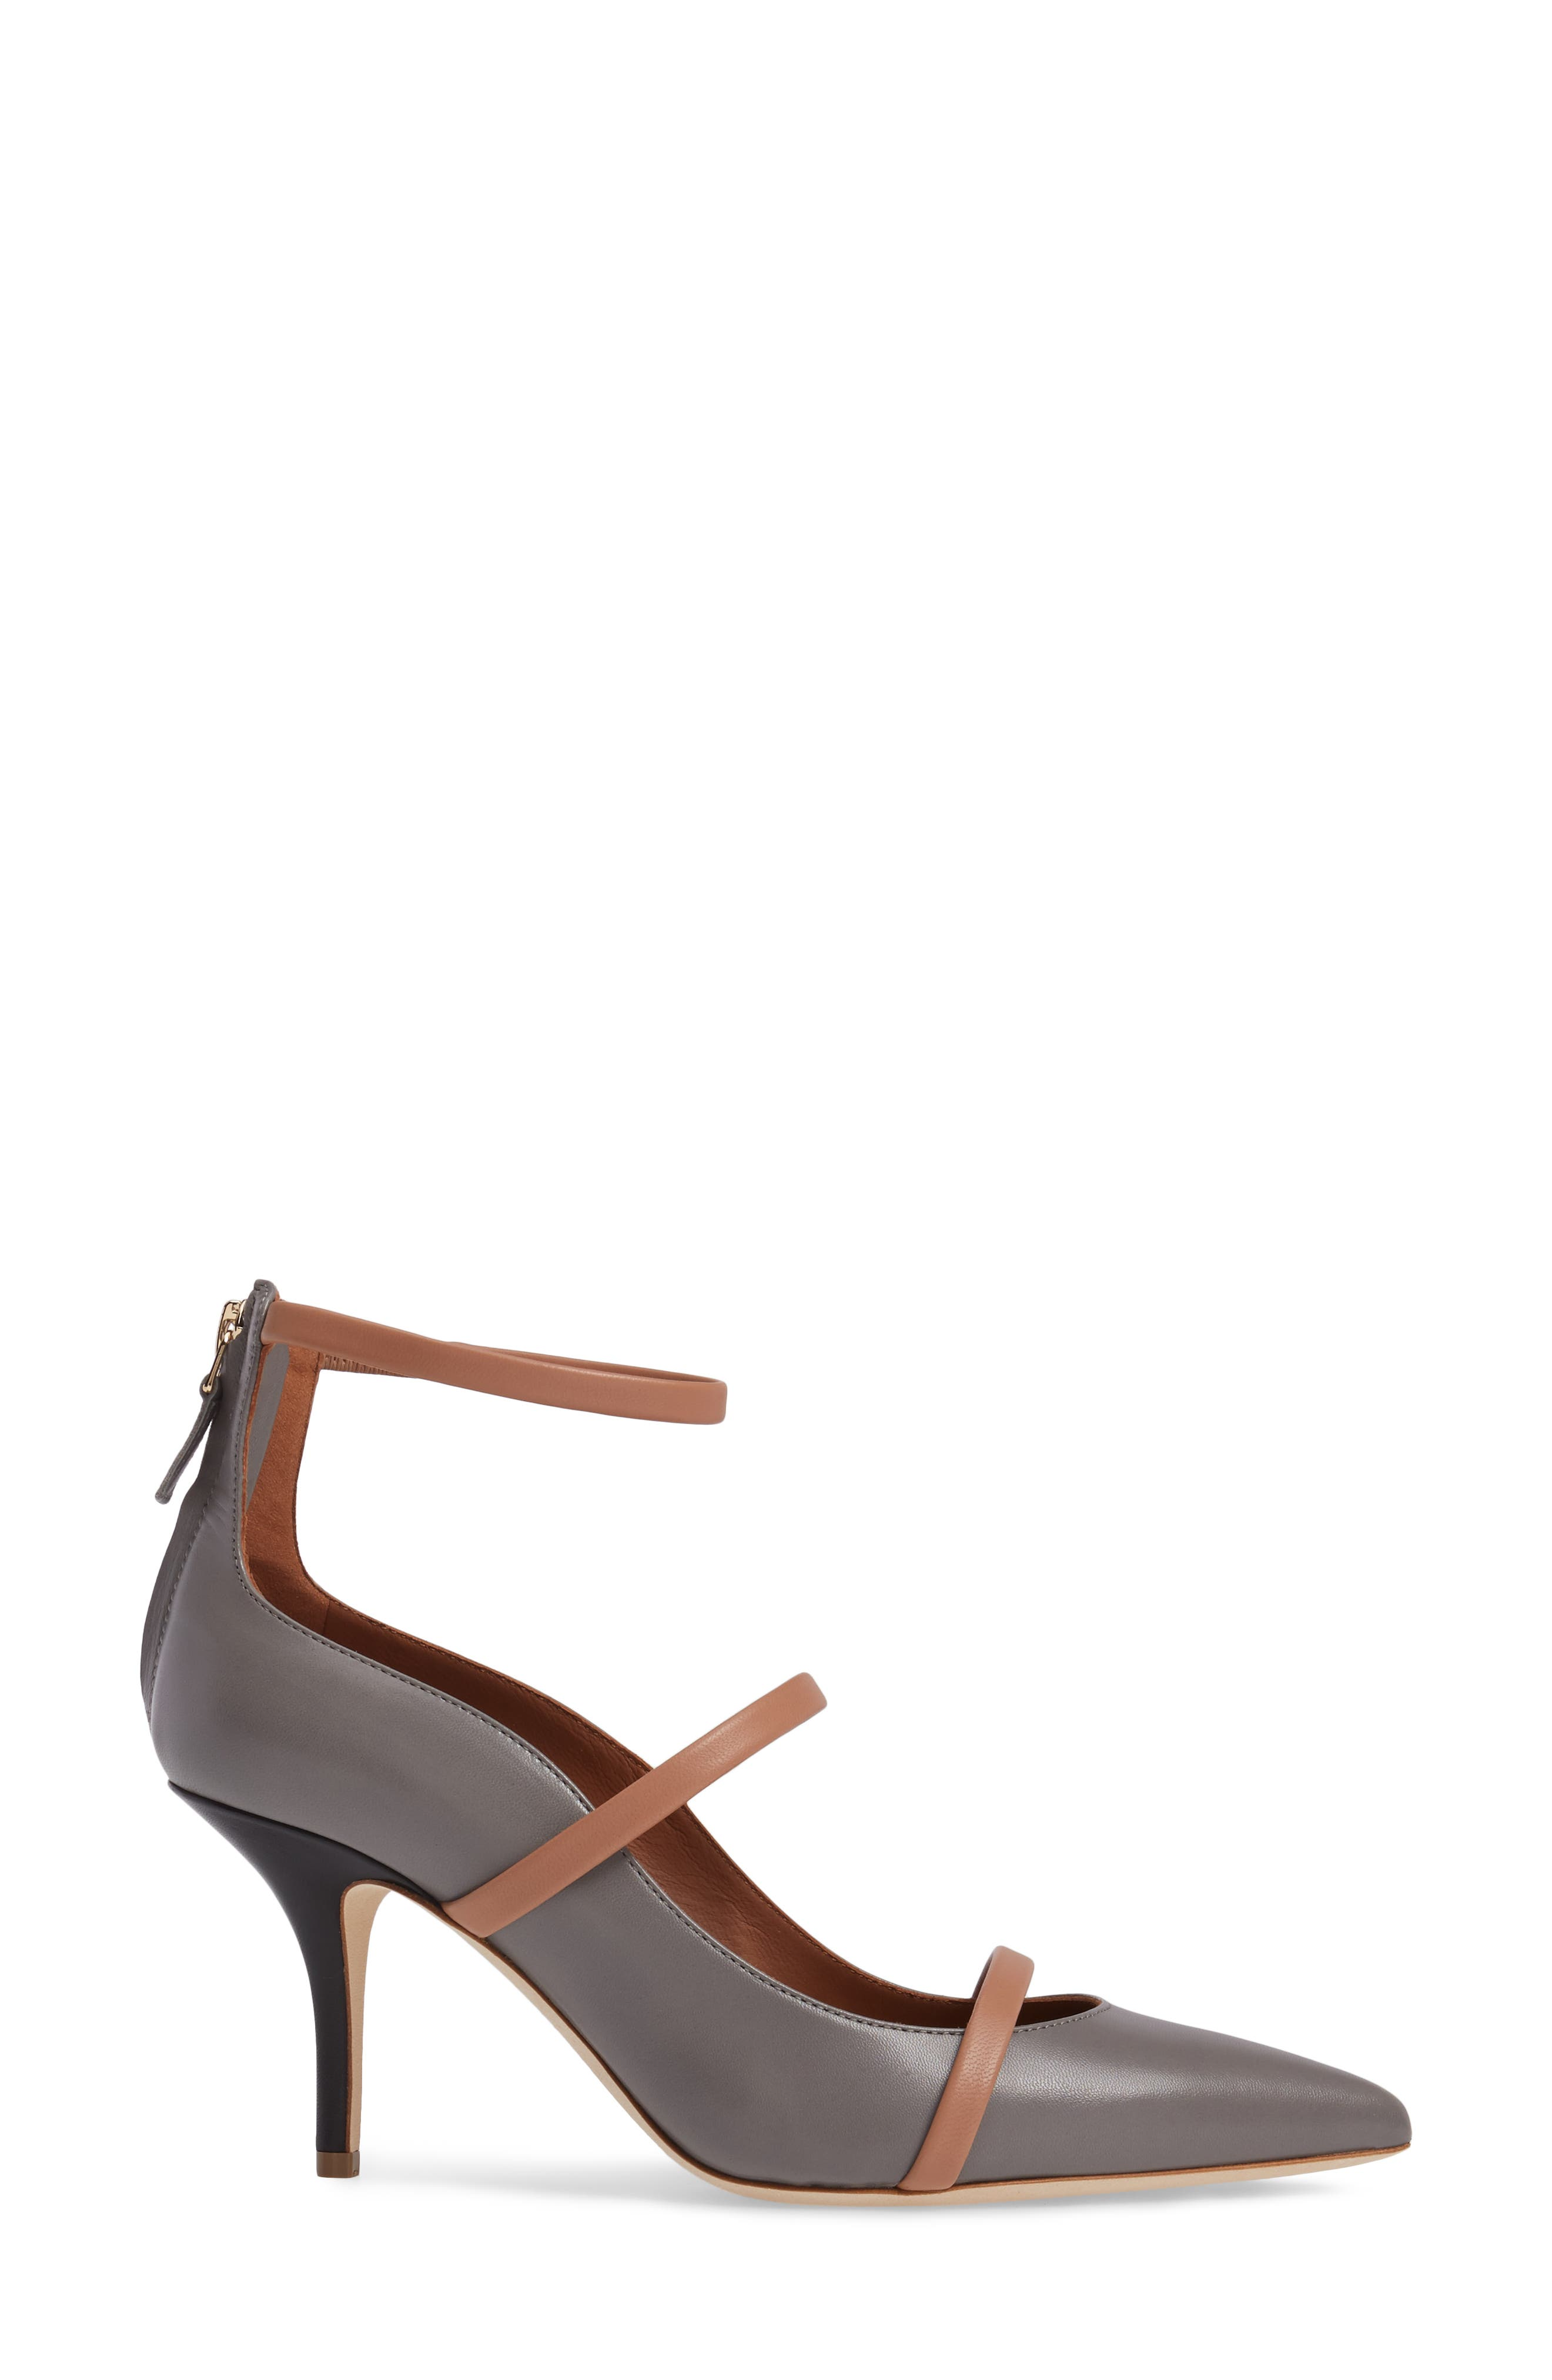 Robyn Ankle Strap Pump,                             Alternate thumbnail 3, color,                             020